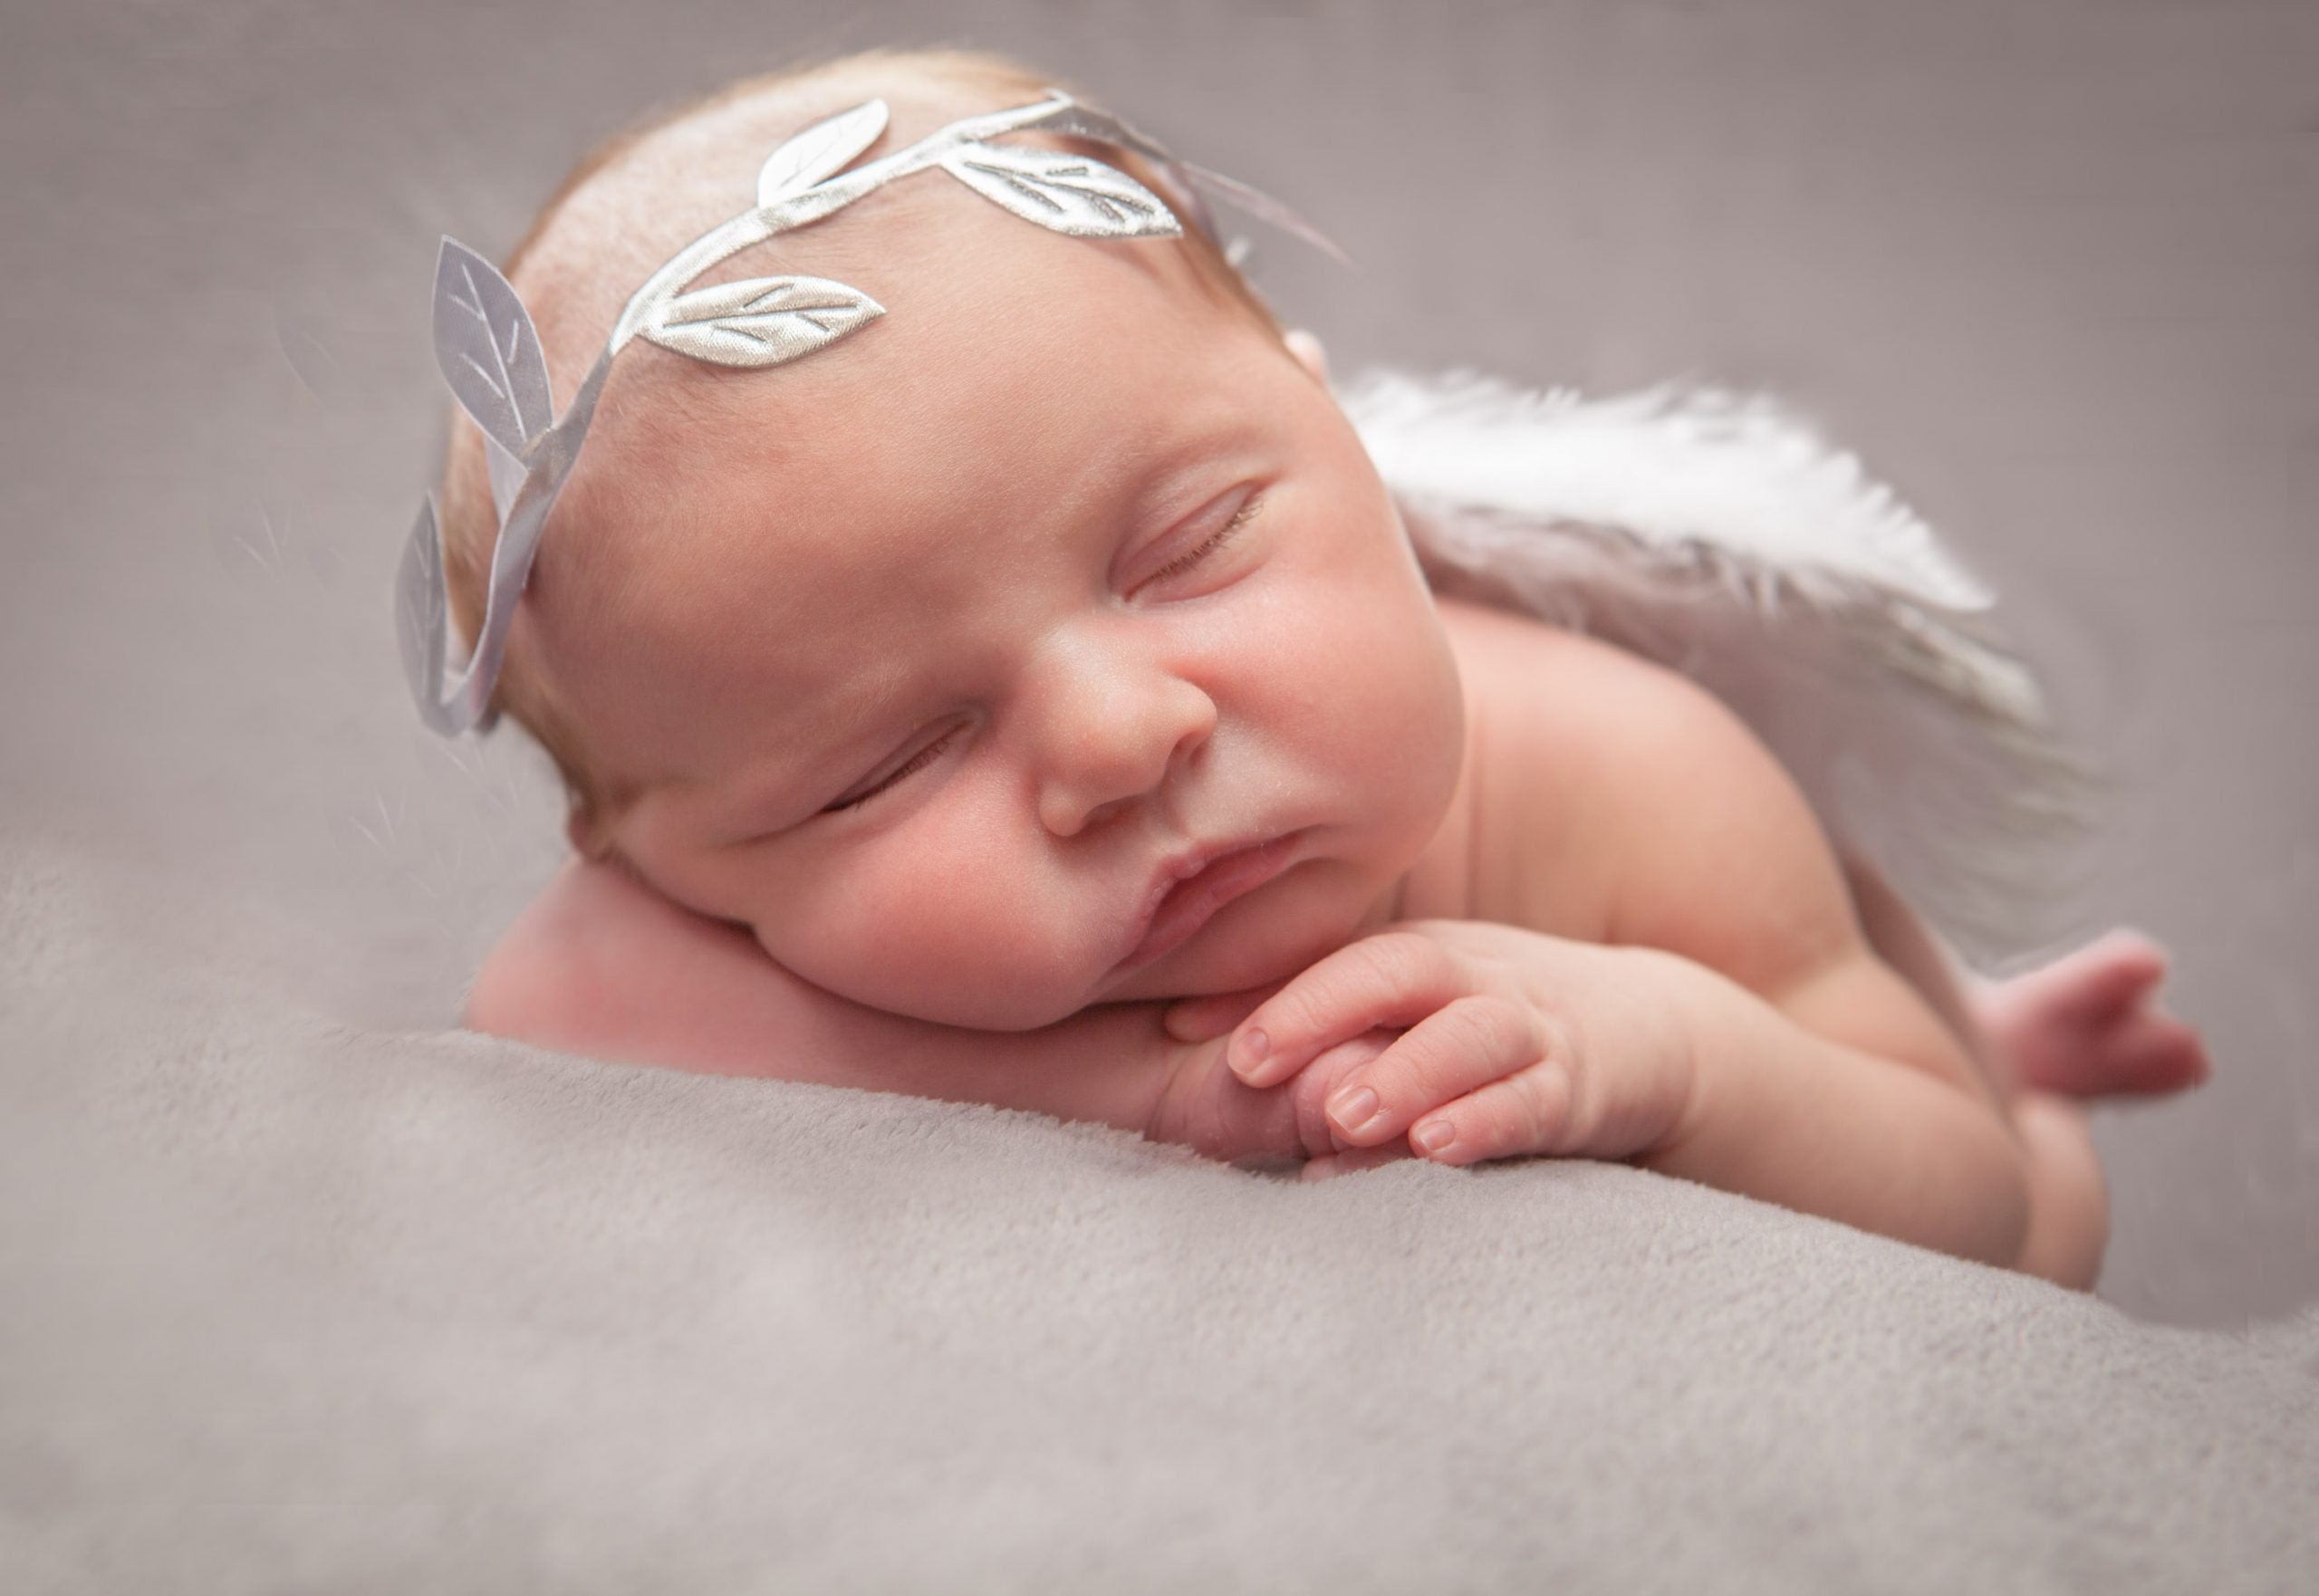 6 day new baby Darcie, newborn photography, Tania Miller Photography, Cwmbran newborn photographer